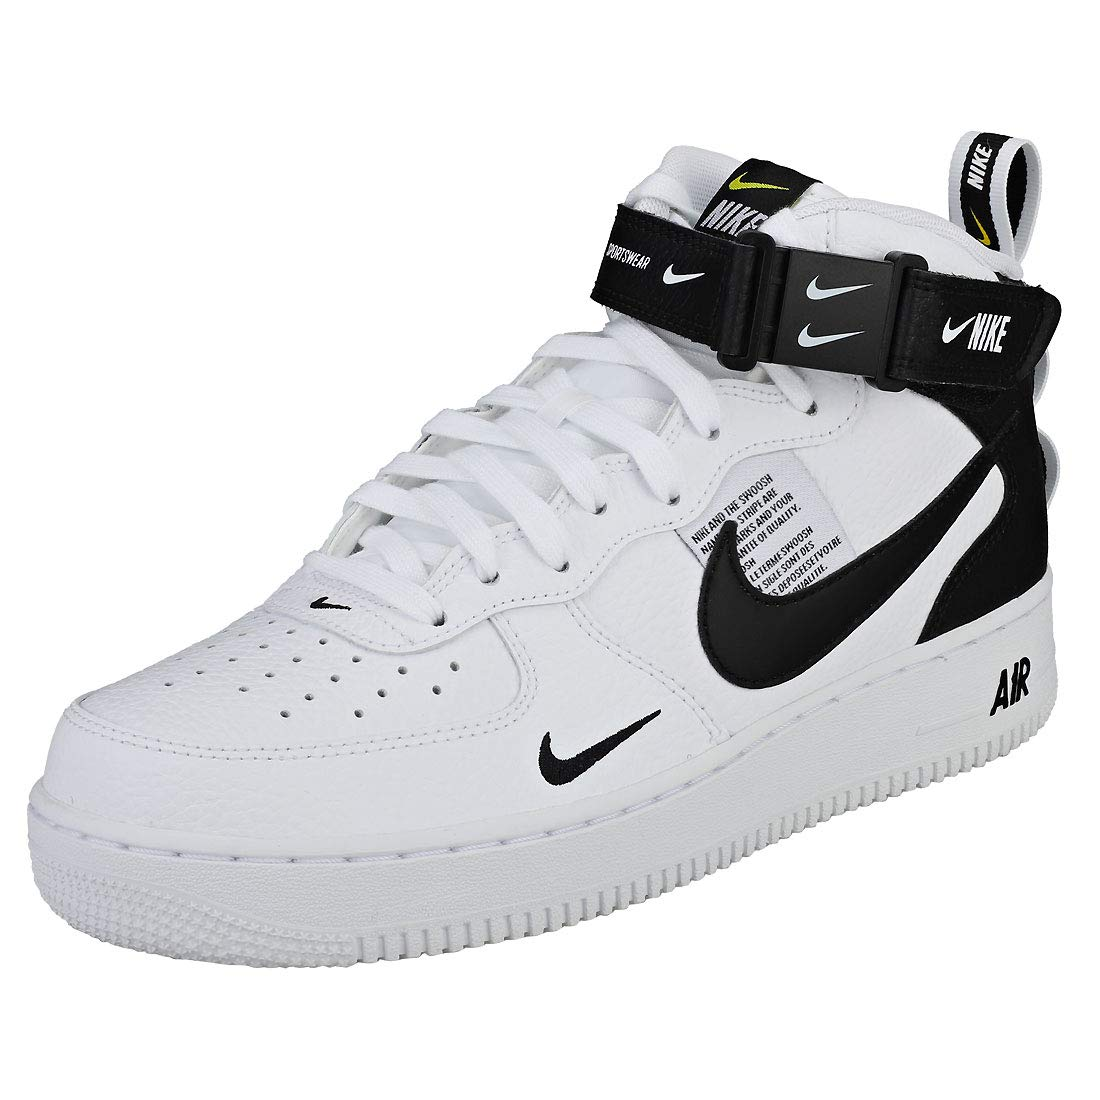 a6ad79a8c13 NIKE Air Force 1 Mid 07 Lv8 Mens Trainers White Black - 11 UK   Amazon.co.uk  Shoes   Bags